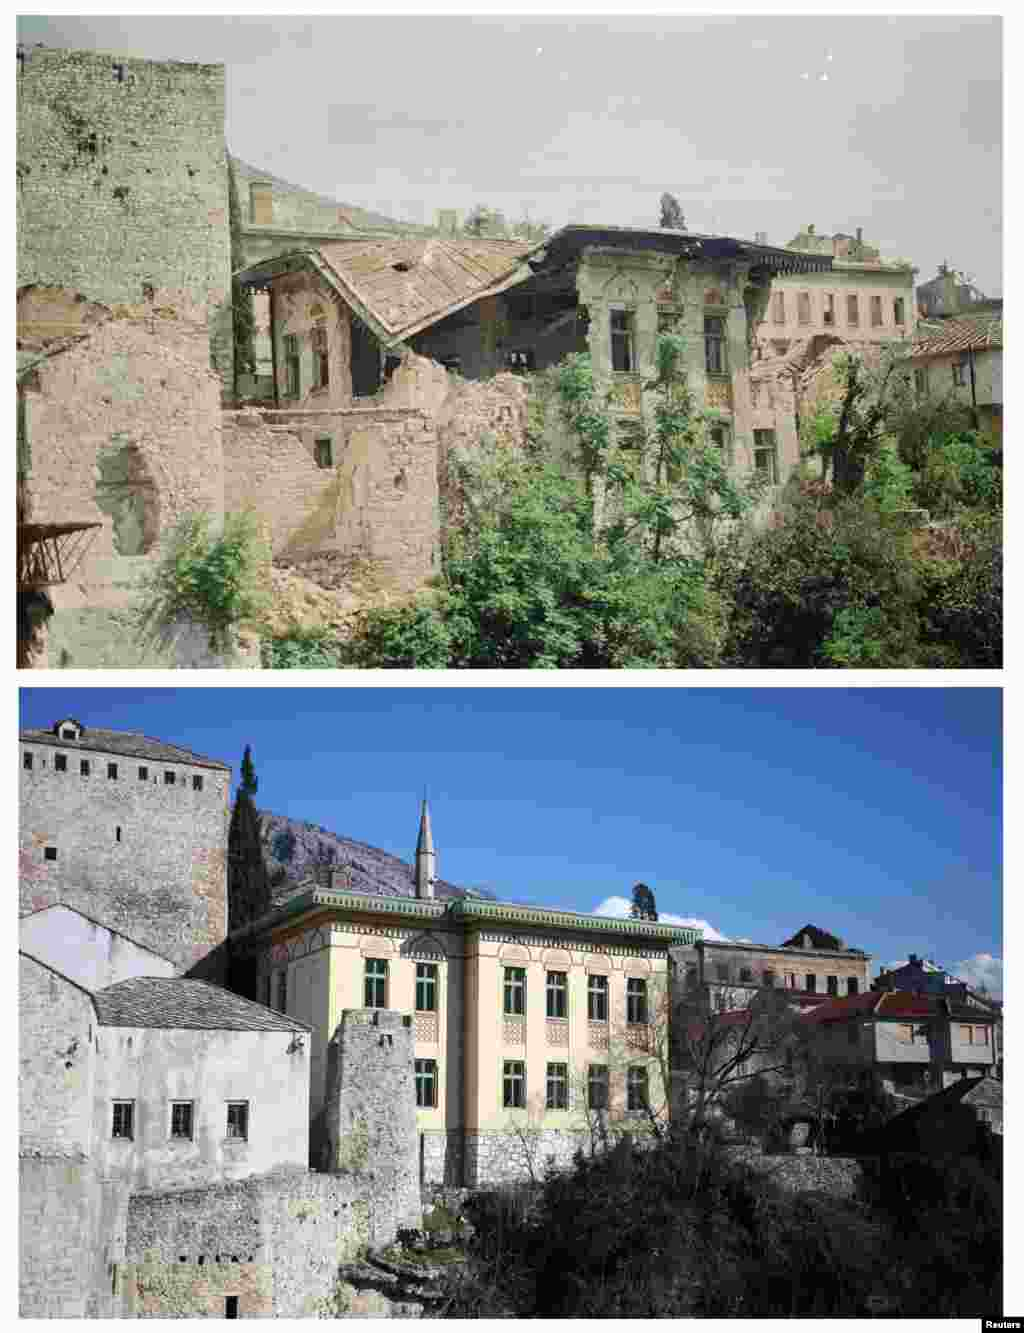 Damaged buildings in the old part of Mostar city in June 1993. The photo underneath shows the same place on February 23, 2013